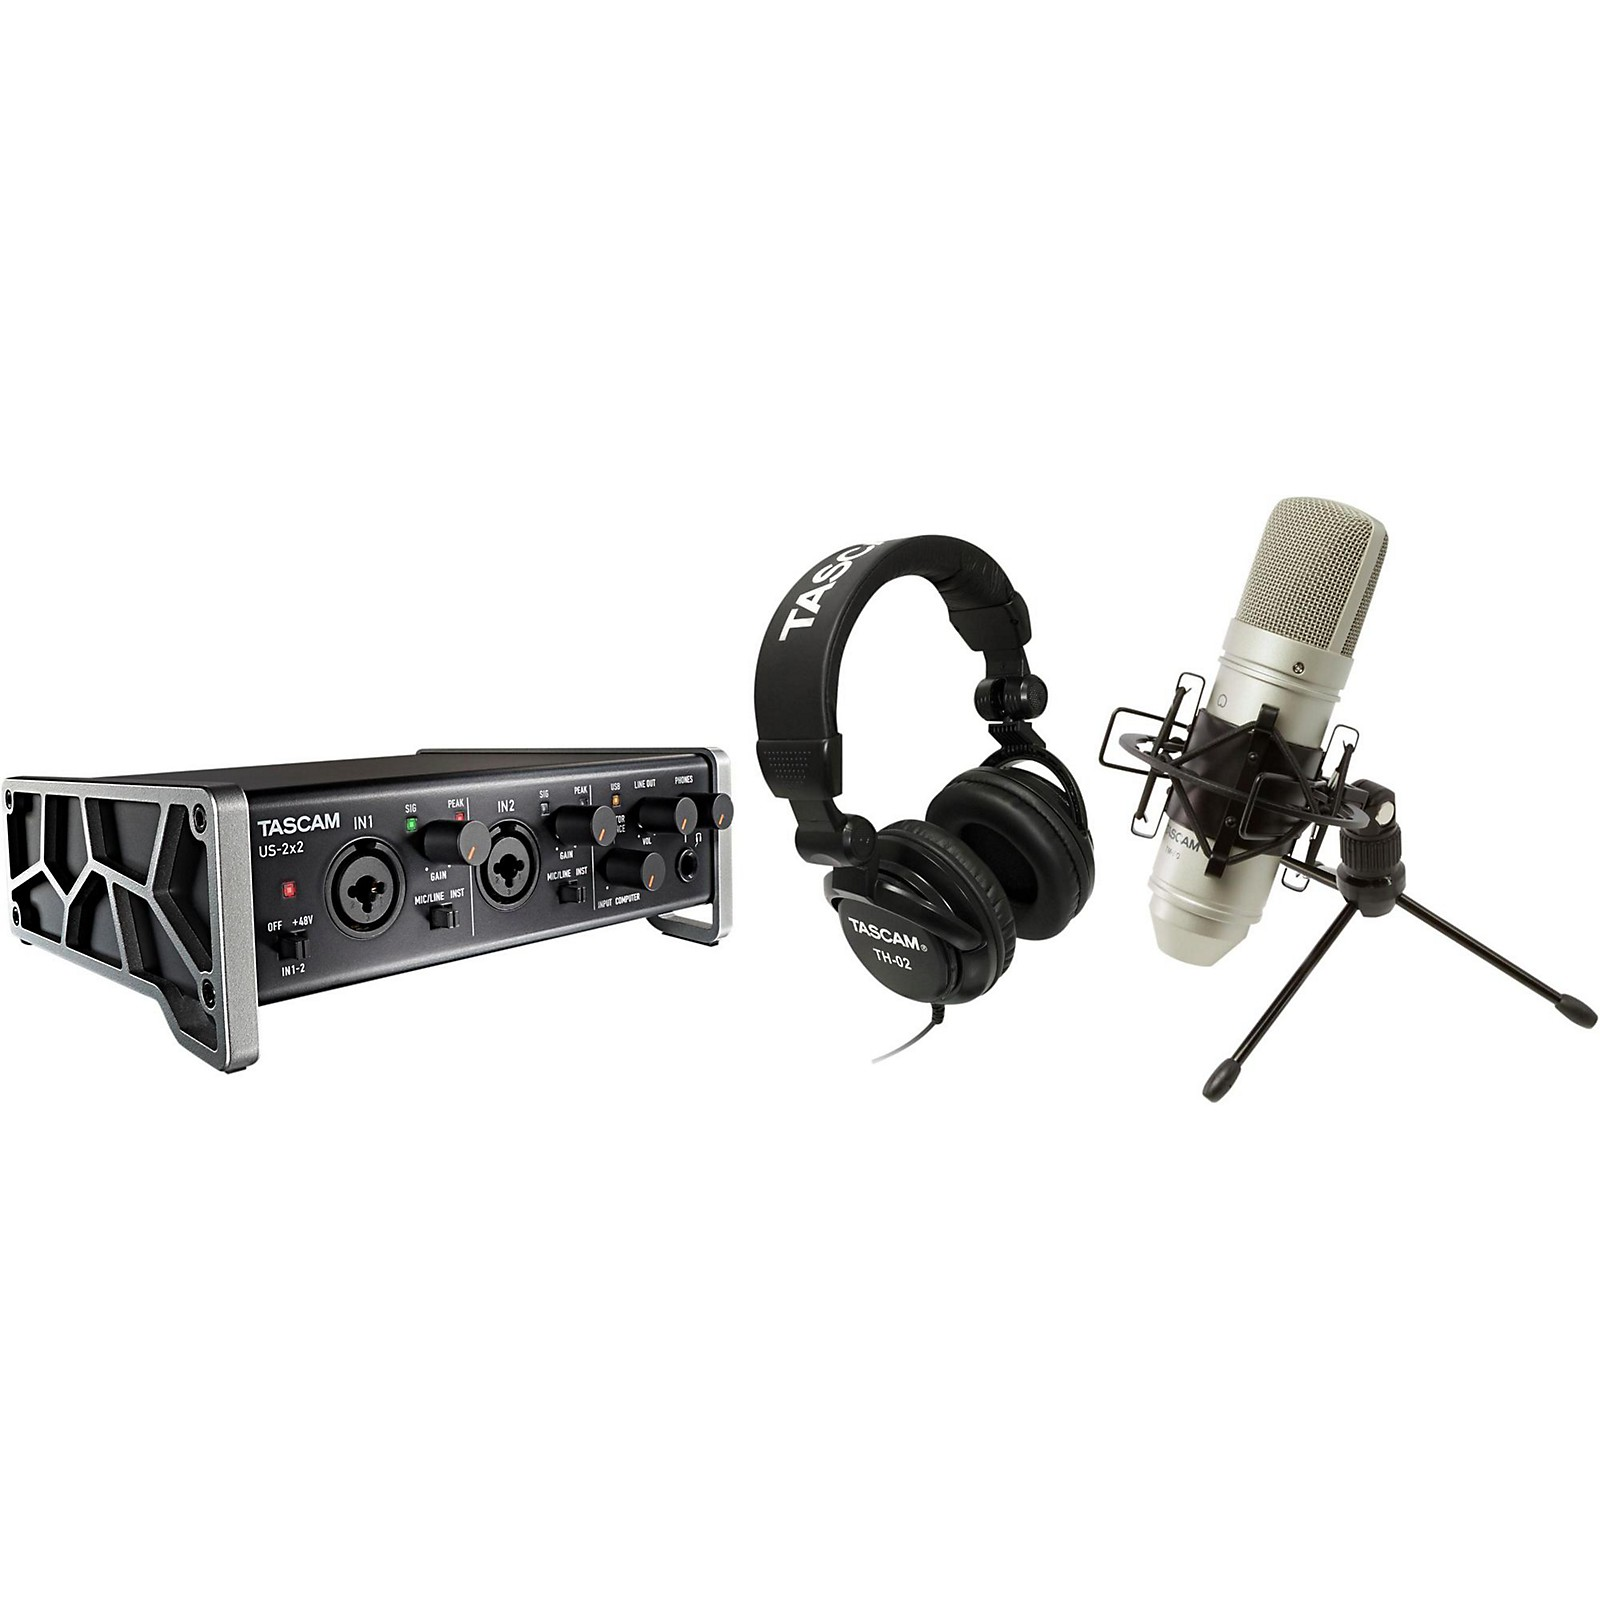 Tascam TrackPack 2x2 Complete Recording Studio for Mac/Windows